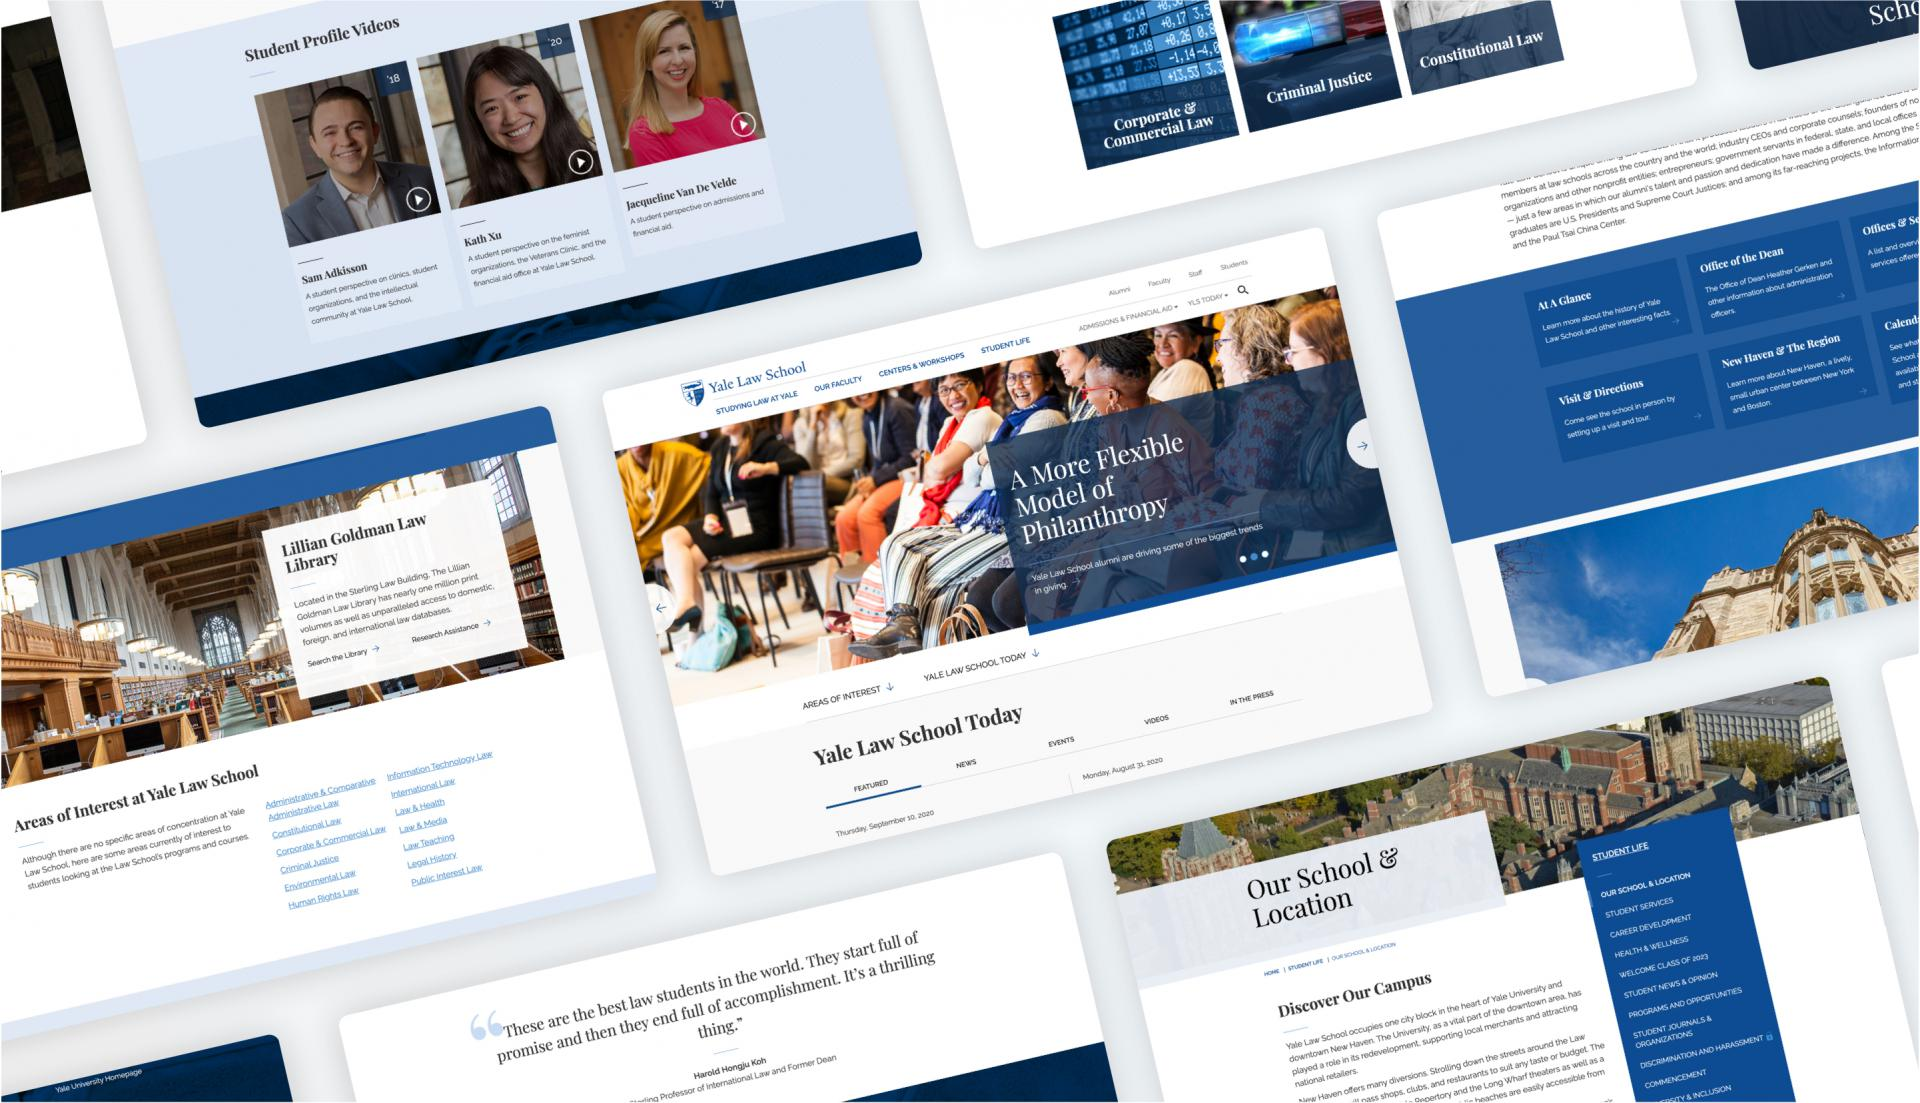 tablet view of multiple screens from the redesigned Yale Law School website